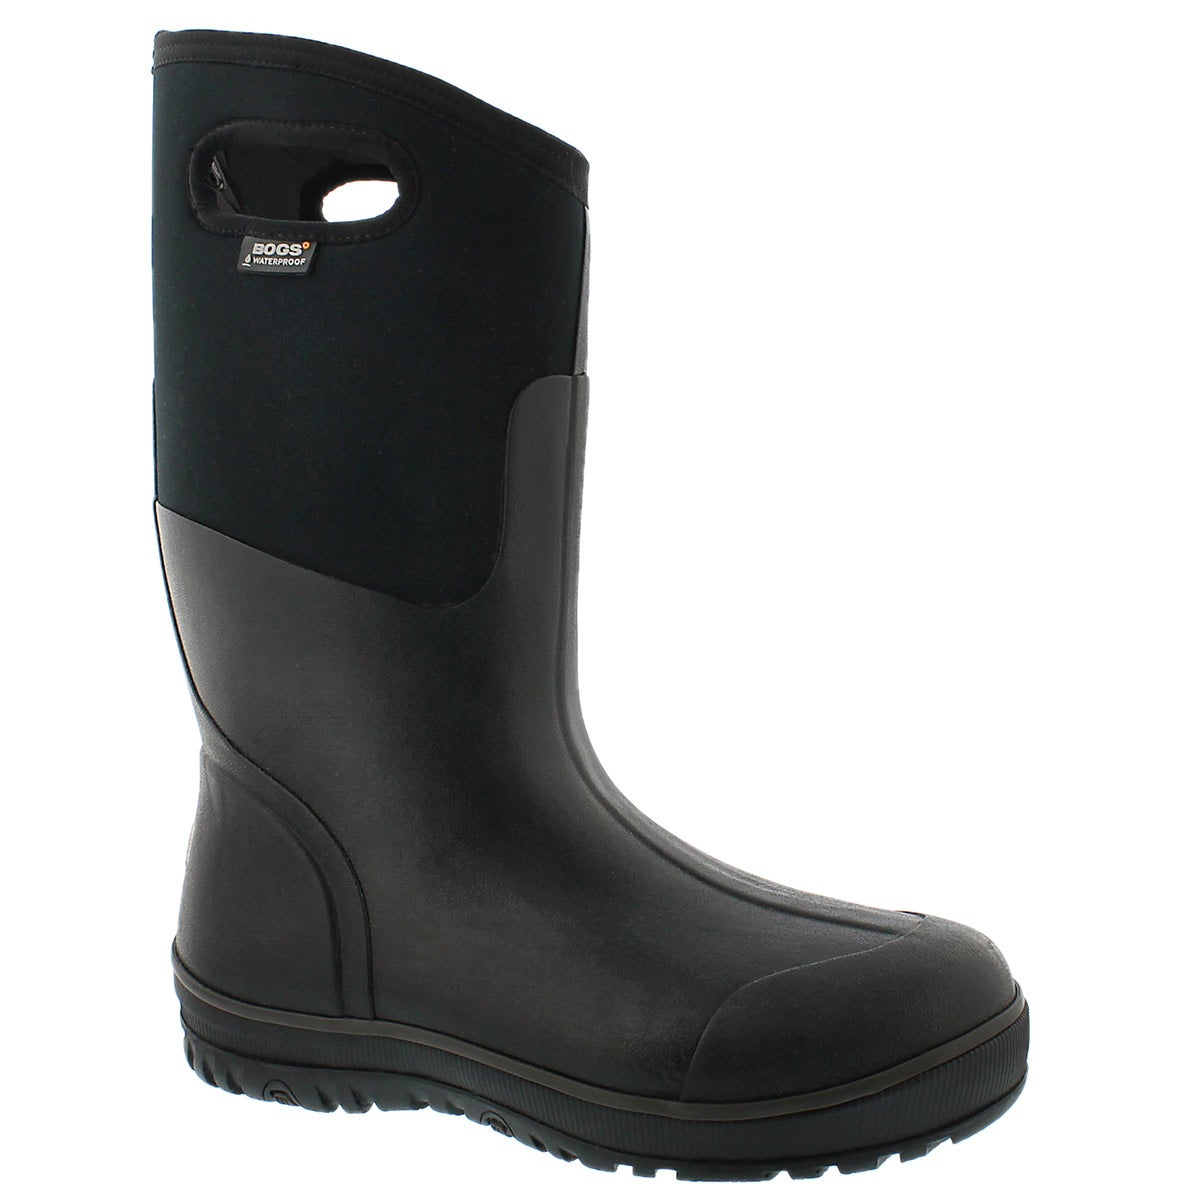 Mns Ultra High blk wtpf boot